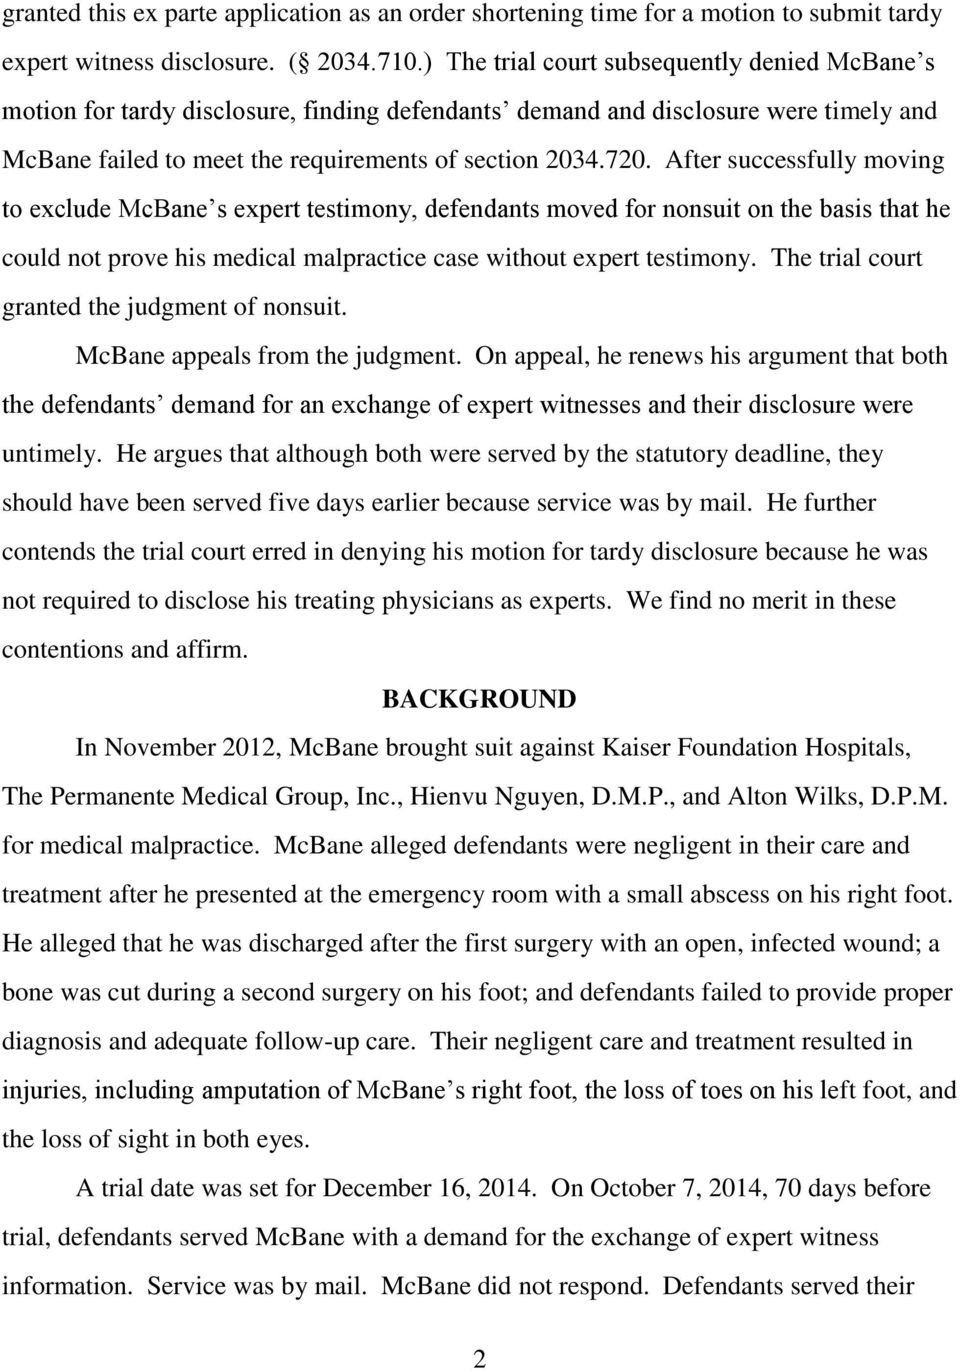 After successfully moving to exclude McBane s expert testimony, defendants moved for nonsuit on the basis that he could not prove his medical malpractice case without expert testimony.